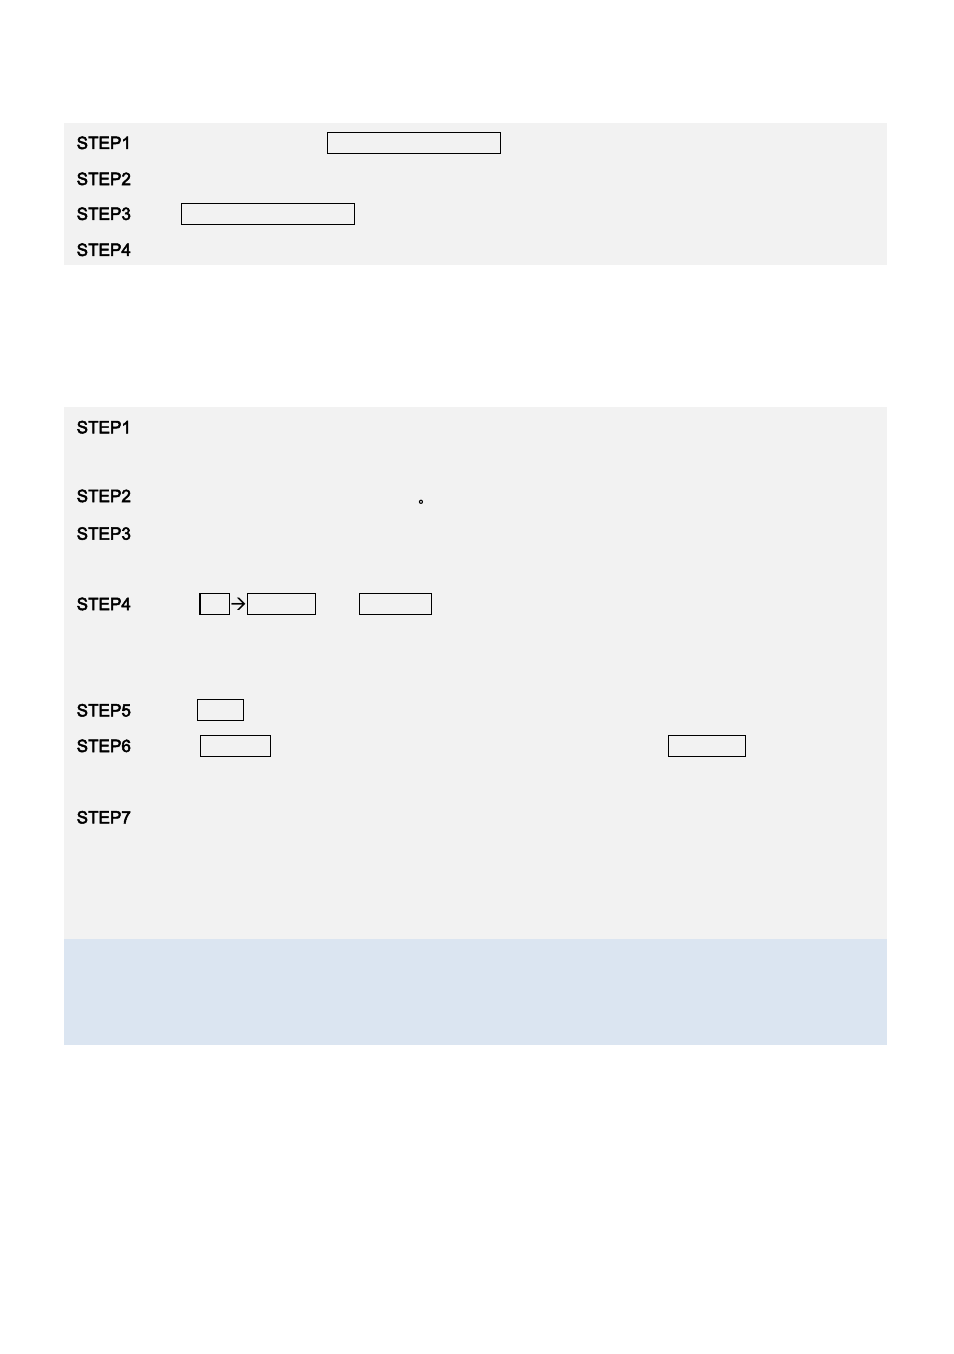 Dji Naza Lite Software Wiring Diagram Step2 And Driver Installation Step3 Assistant Usage Step